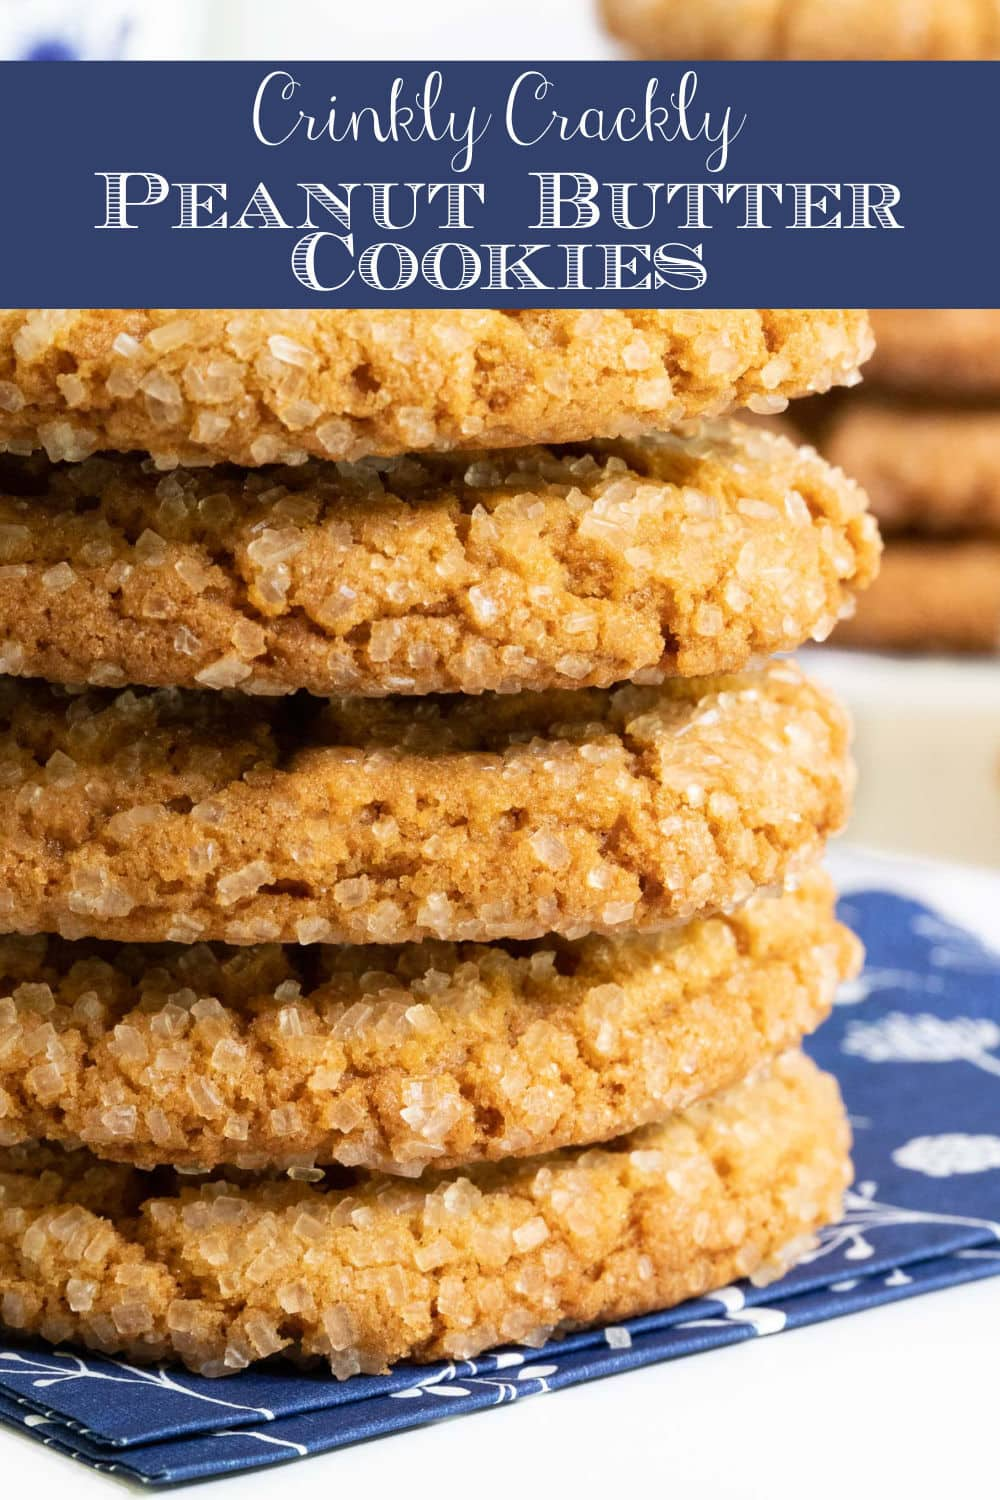 Crinkly Crackly Peanut Butter Cookies